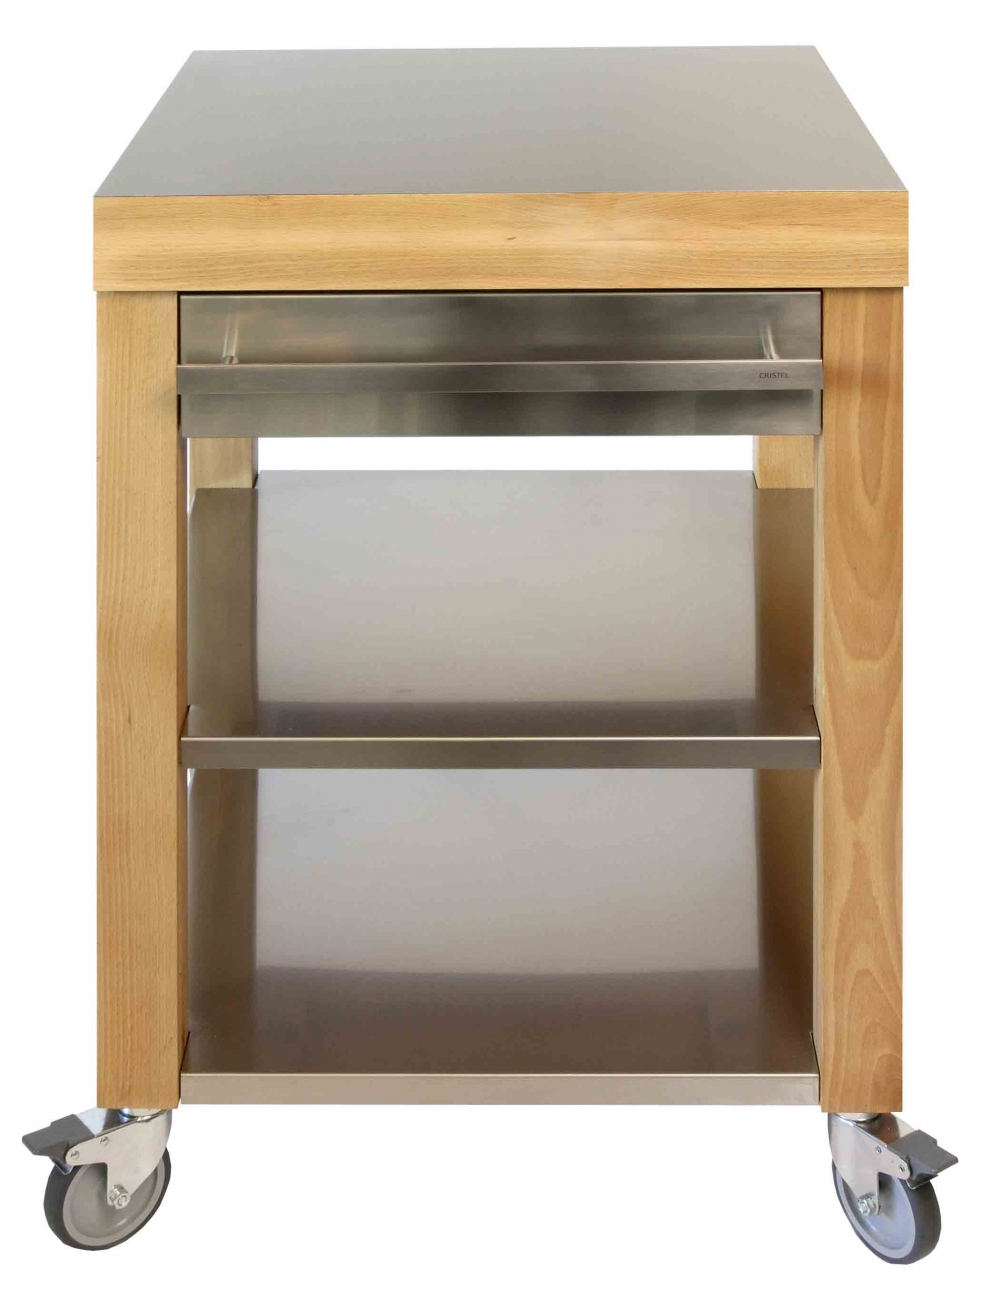 etagere inox cuisine excellent billot de cuisine cookmobil tiroir u tagre inox plan inox bross. Black Bedroom Furniture Sets. Home Design Ideas